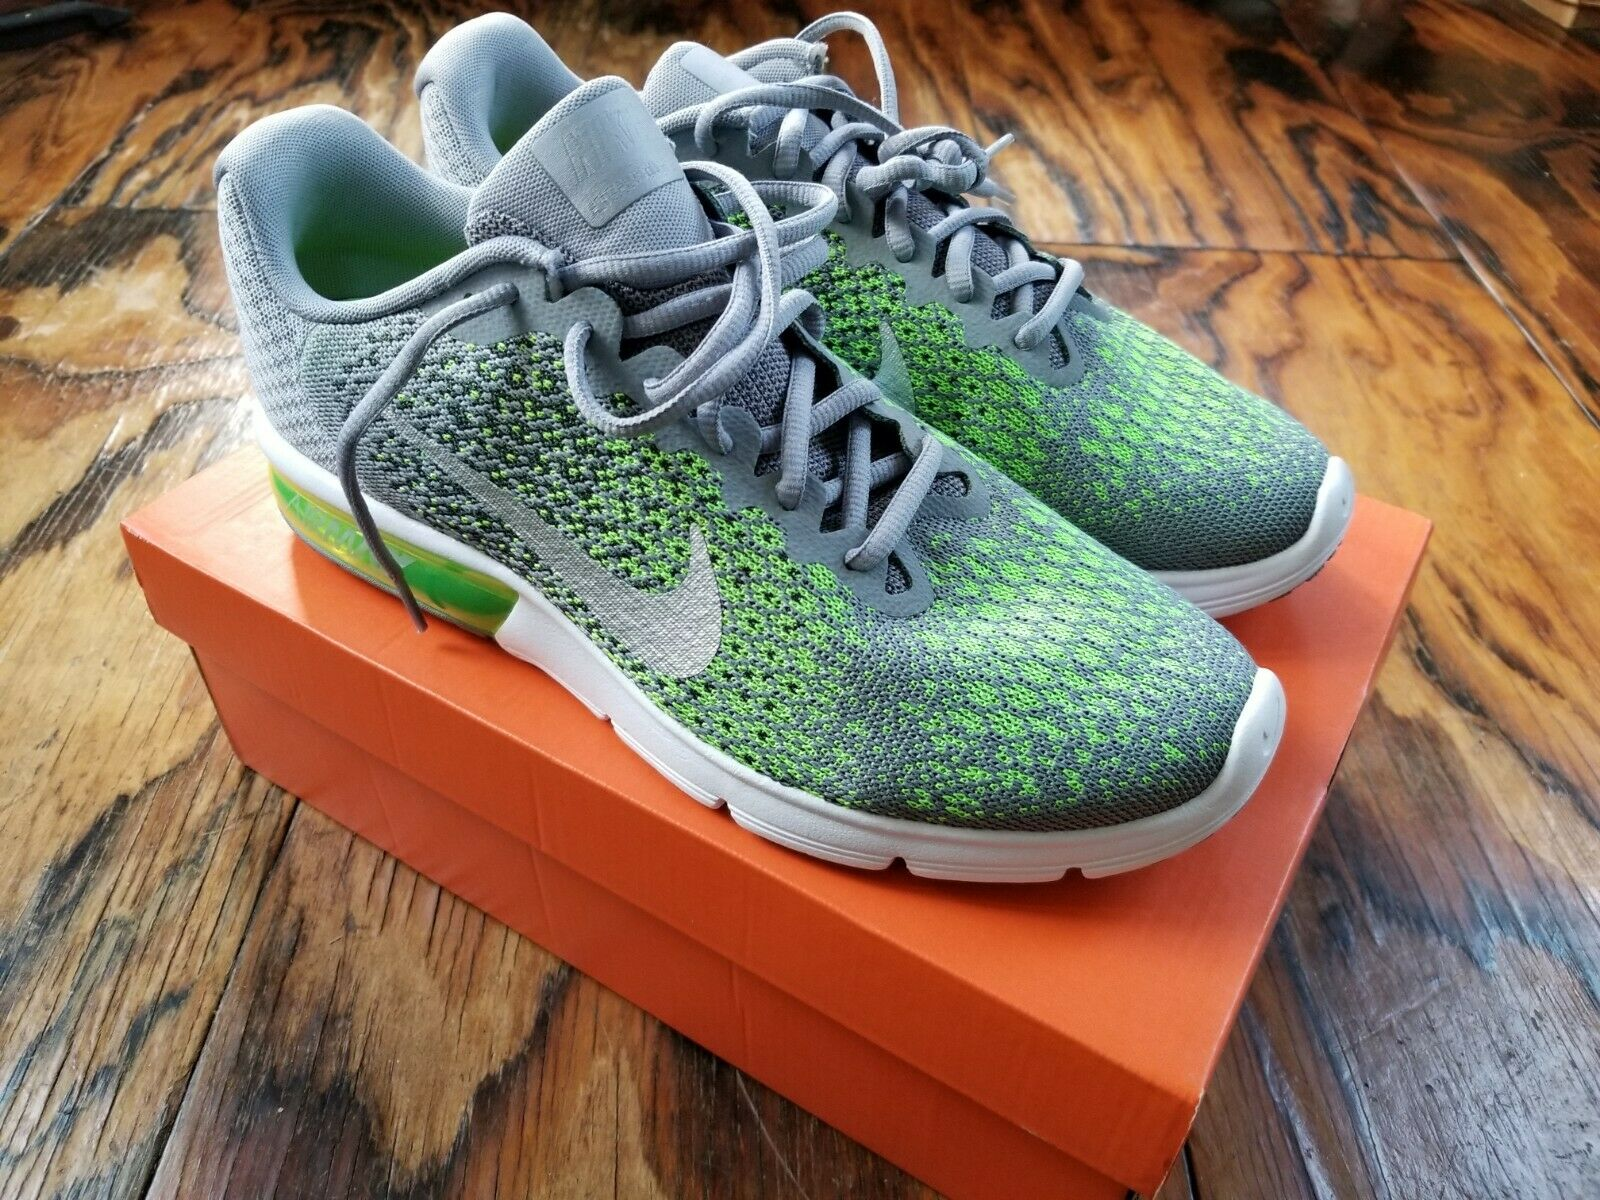 Nike Air Max Sequent 2 - Stealth Metallic Silver - Size 10 - (852461-003)